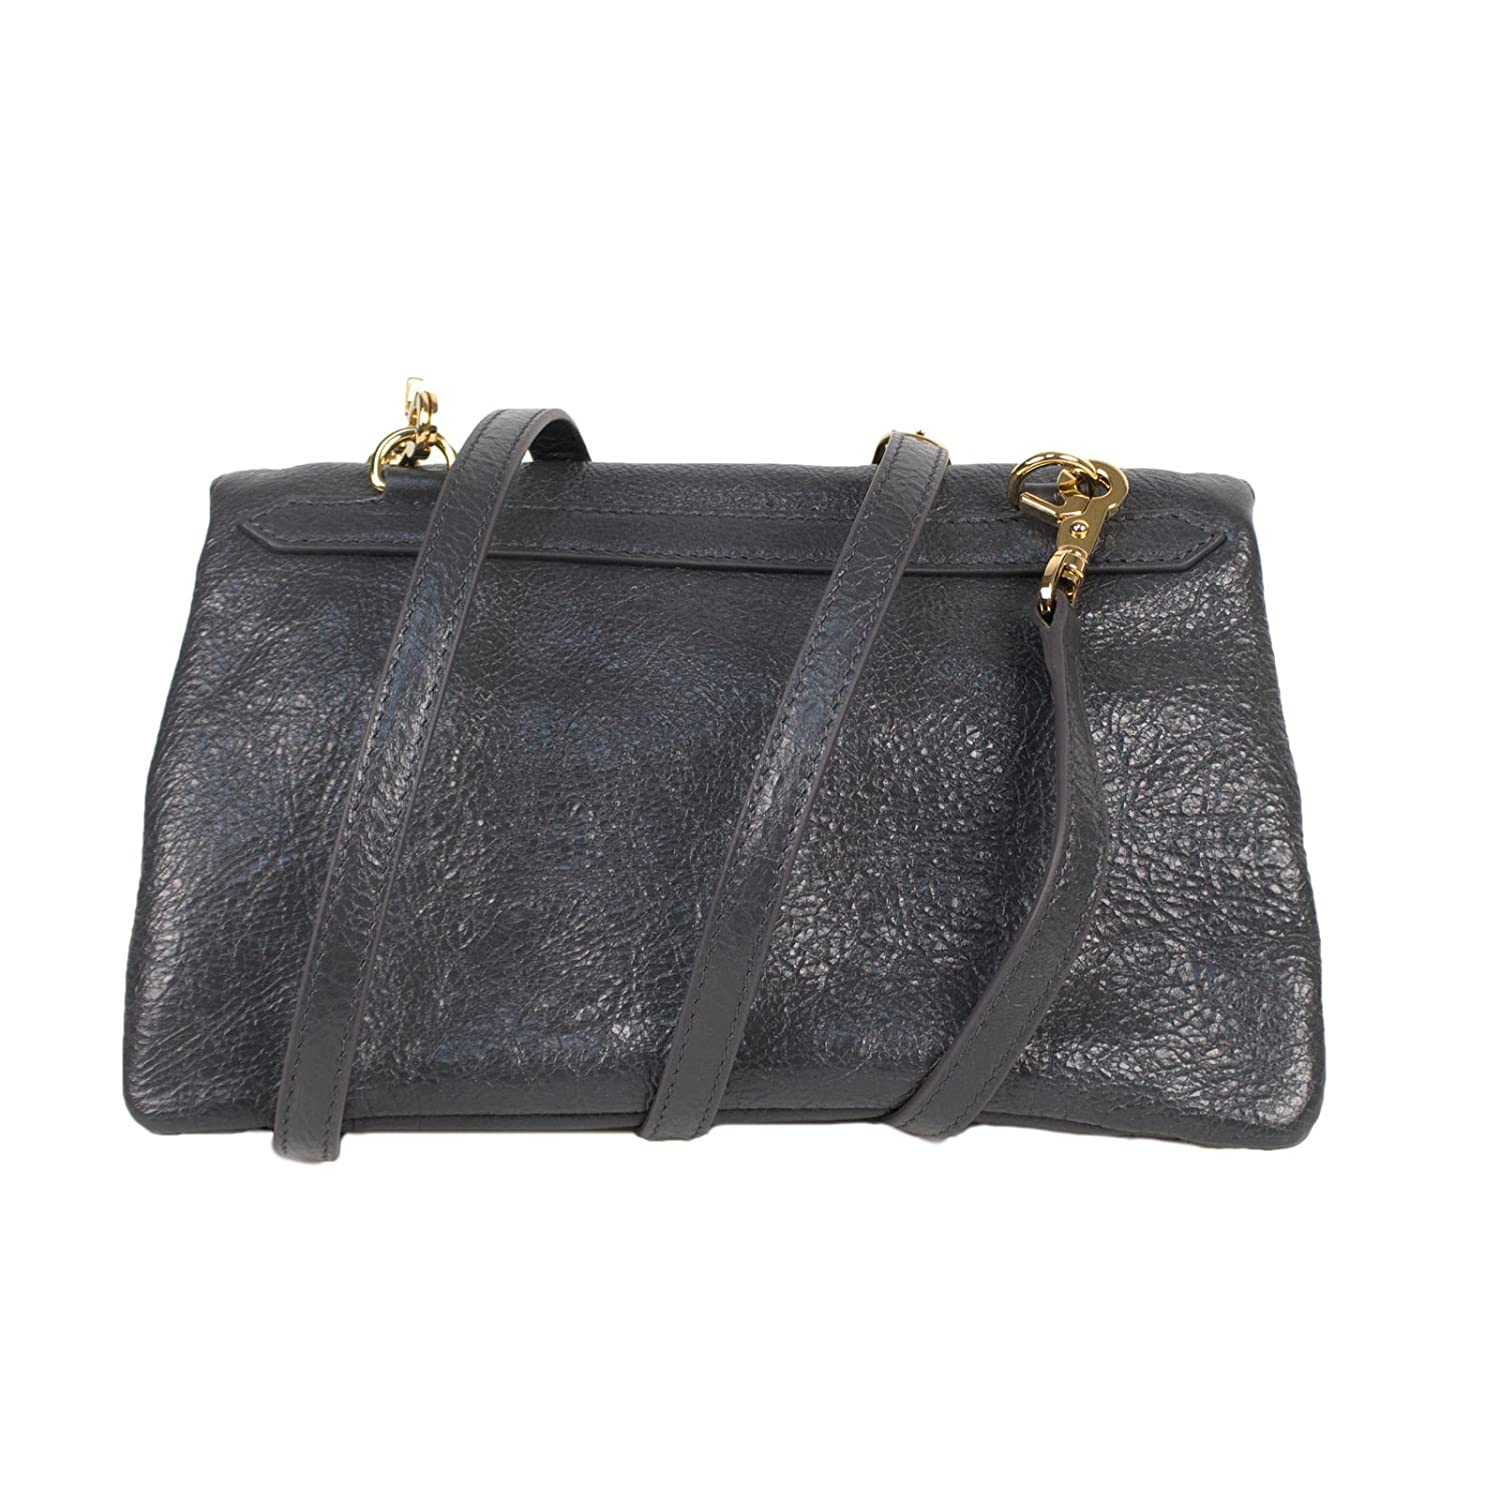 d1b1ff18e54 Amazon.com : Balenciaga Gray Leather Classic Mini Envelope Crossbody Bag :  Baby